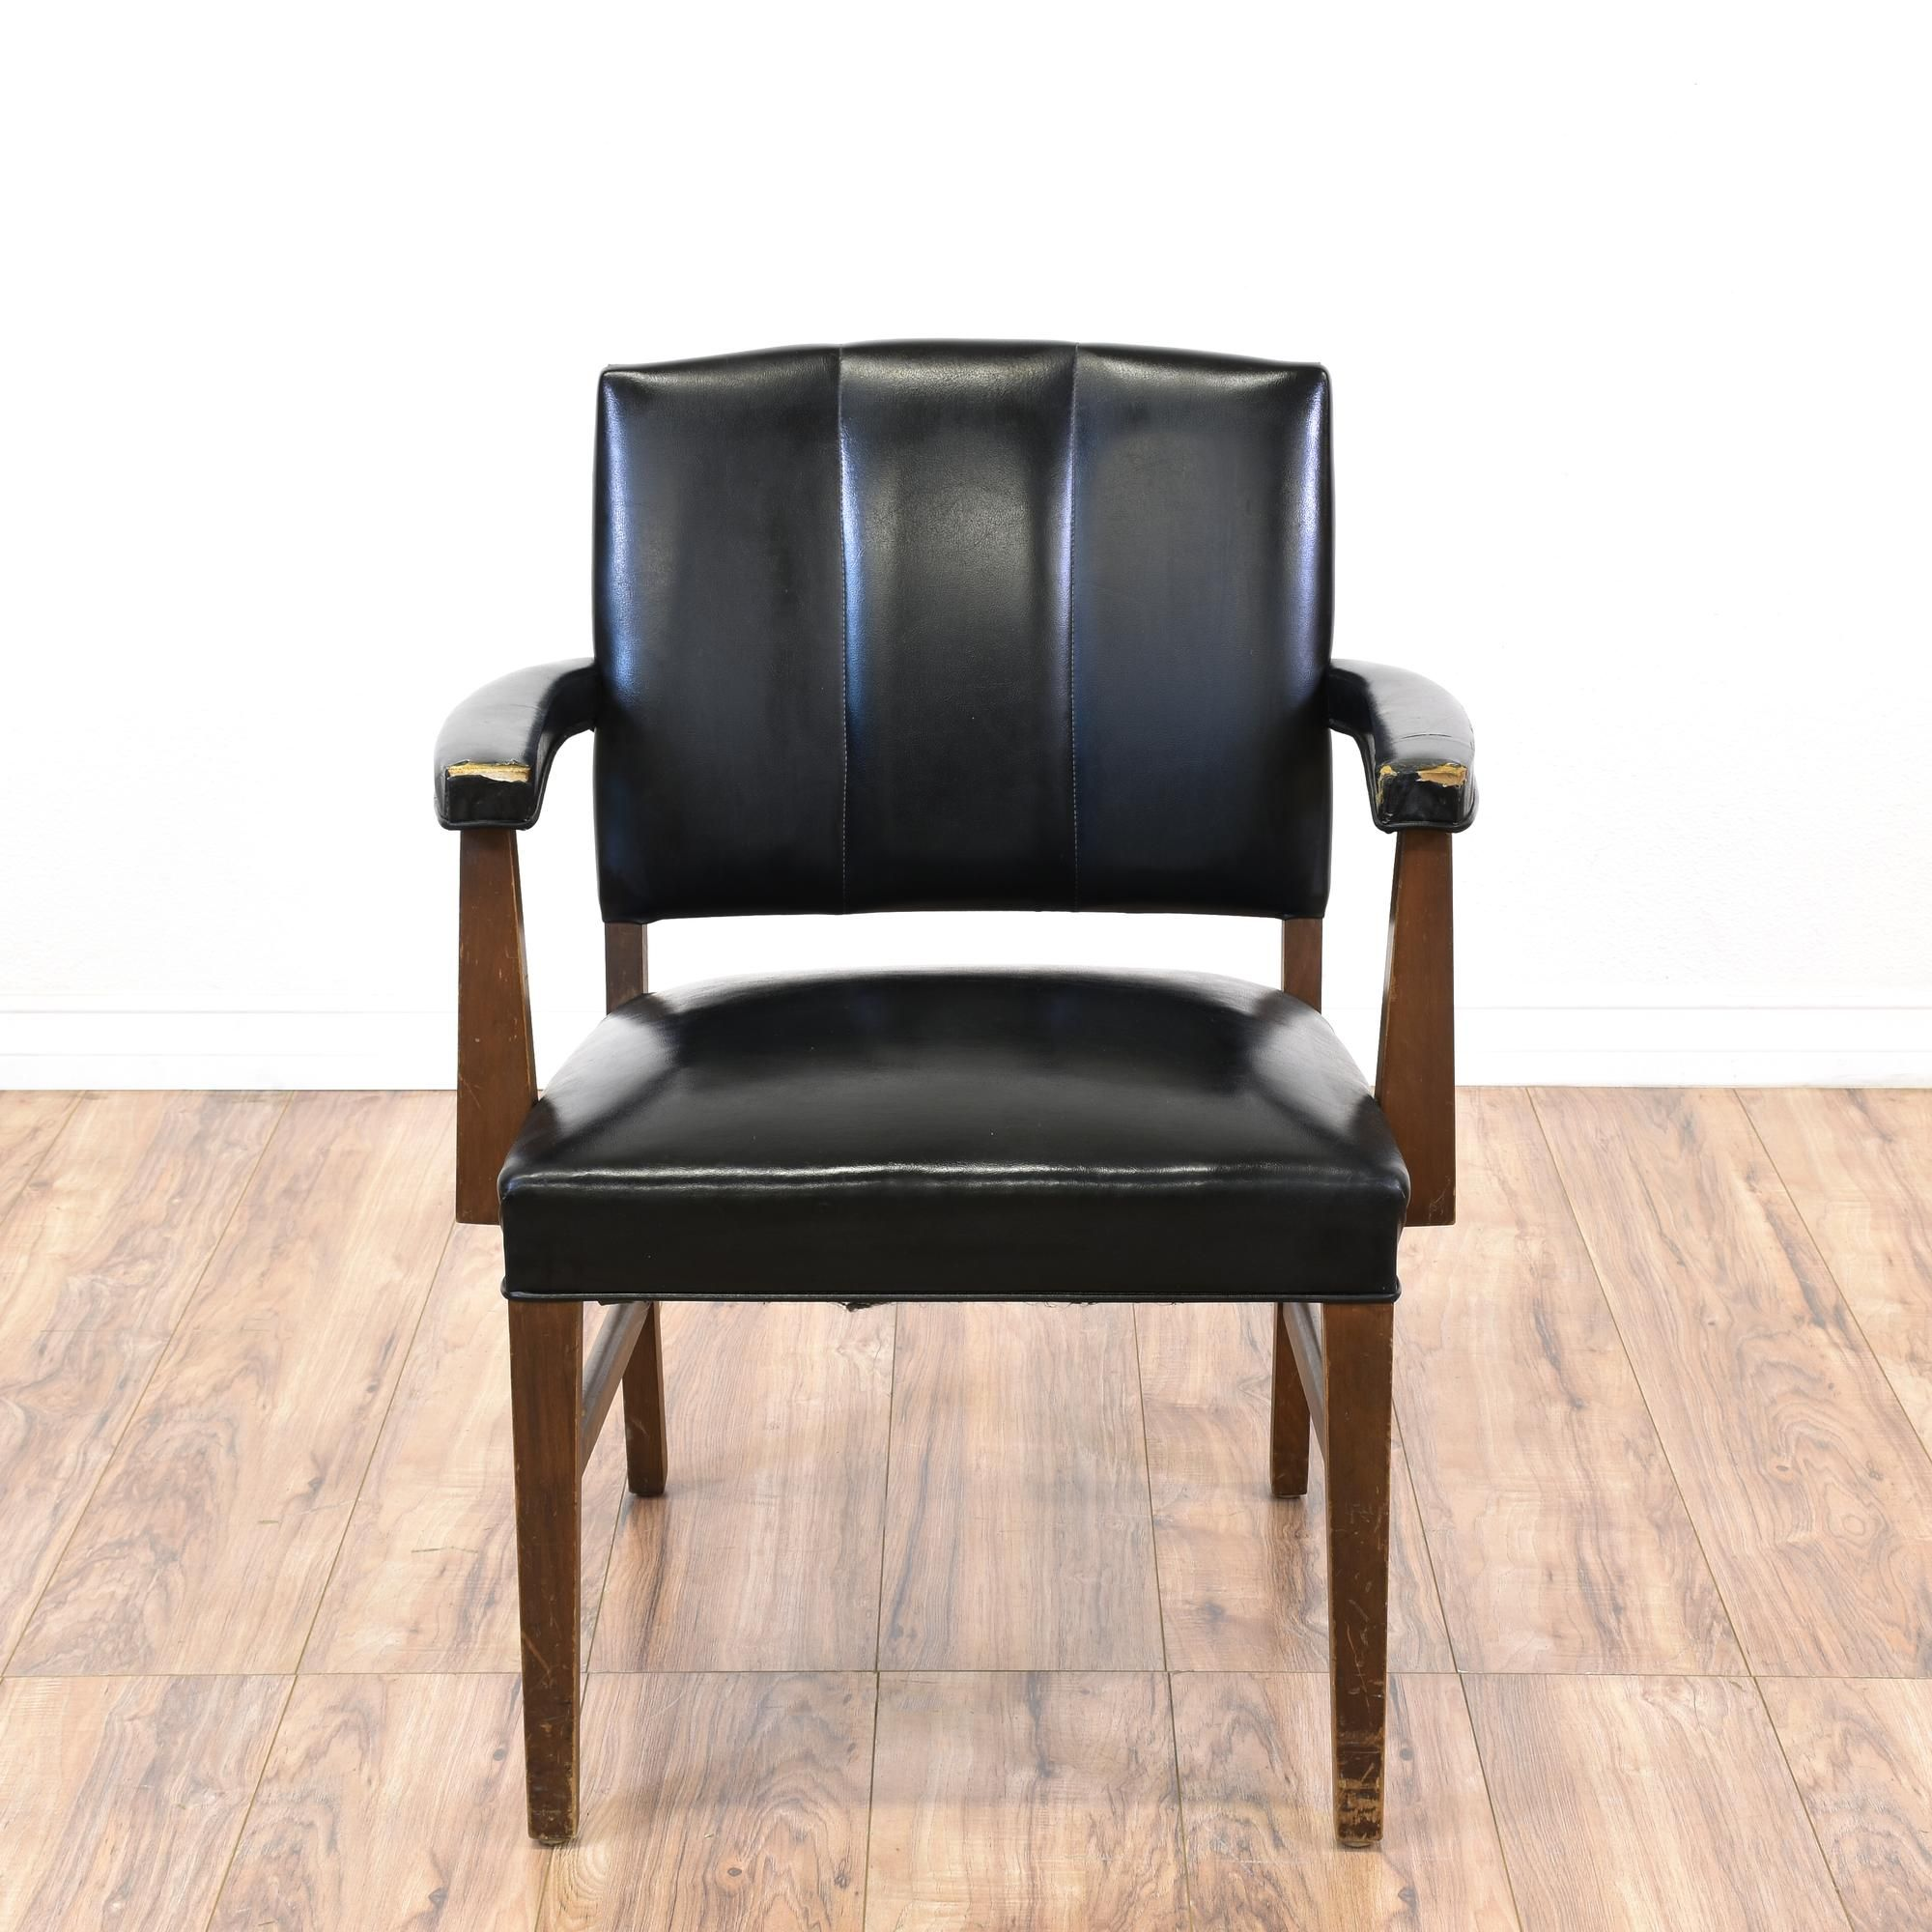 This Mid Century Modern side chair is featured in a solid wood